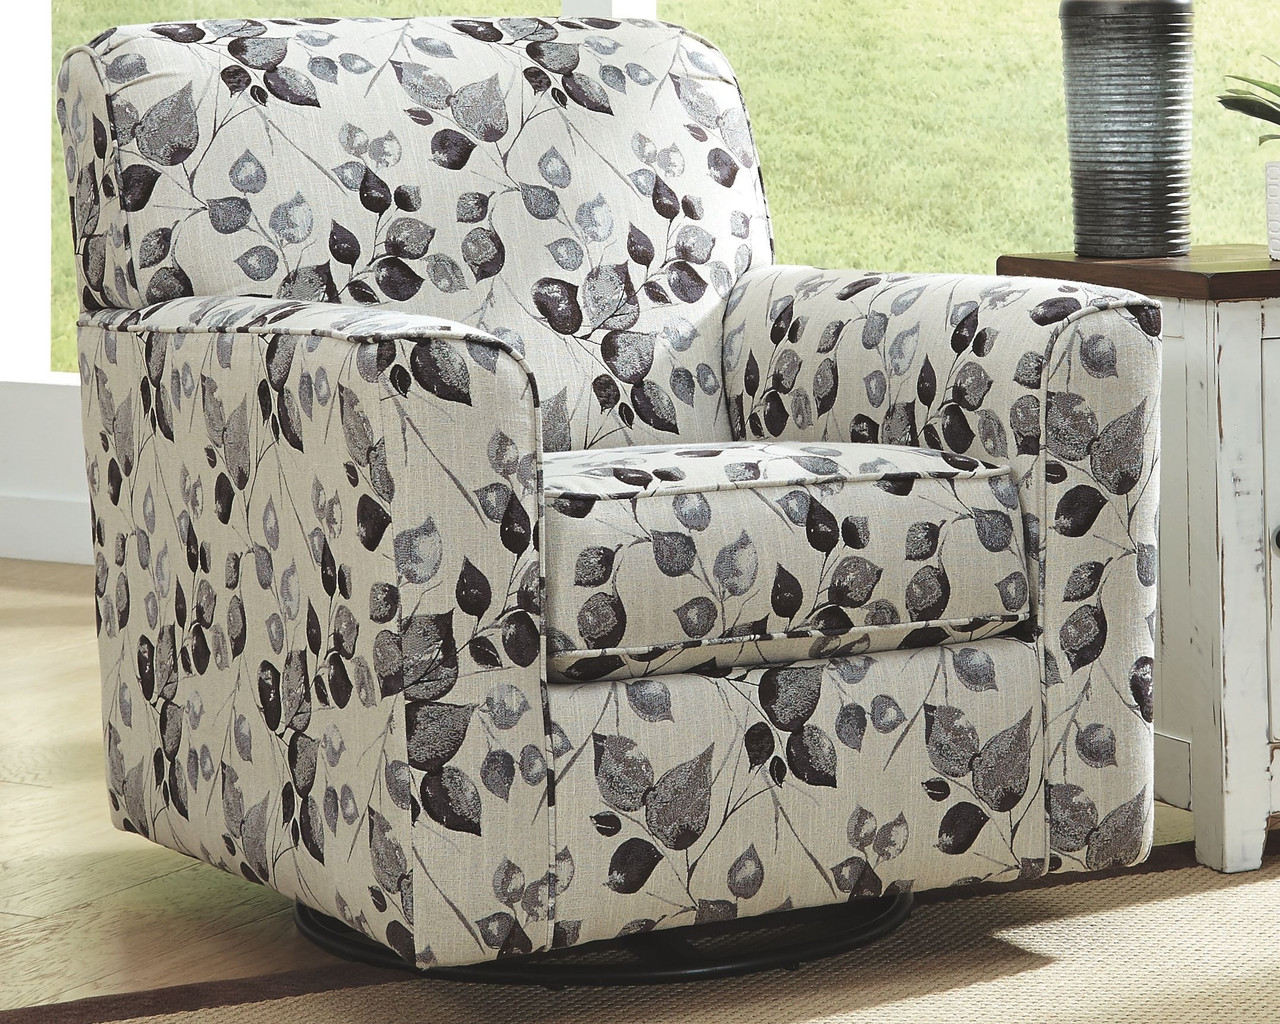 Picture of: Ashley Abney Platinum Swivel Accent Chair On Sale At Red Shed Furniture Serving Goldsboro Wilson Greenville Nc